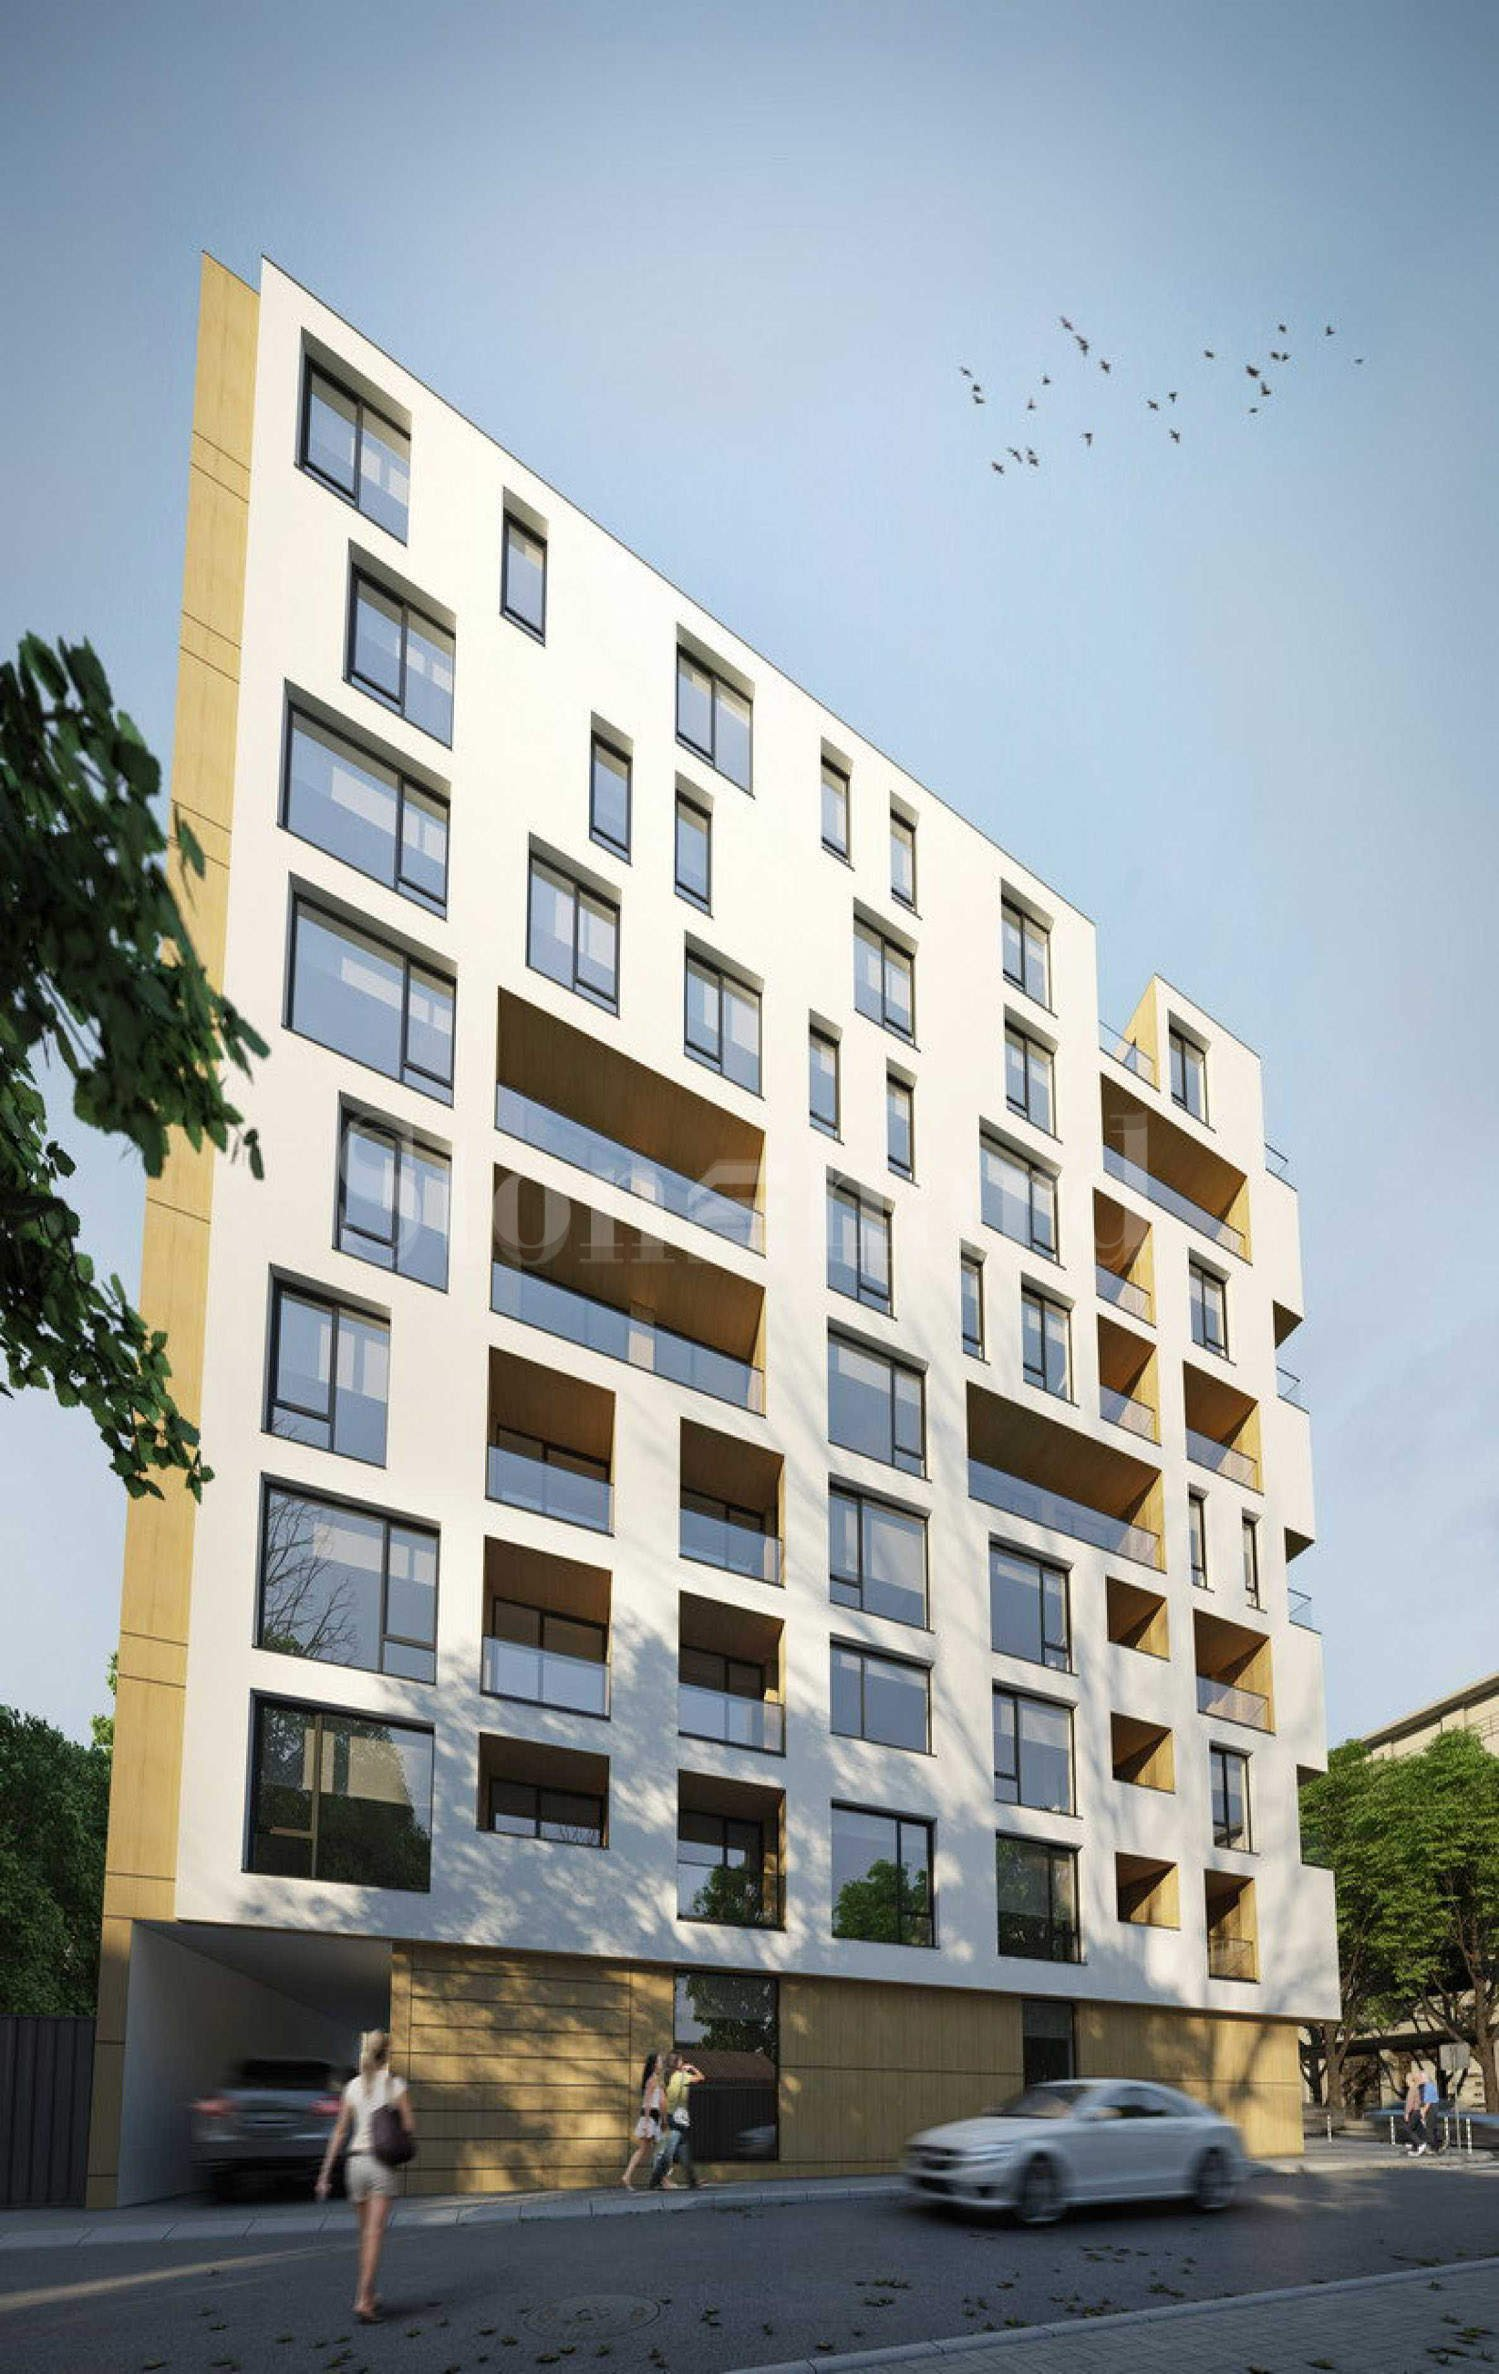 Limited number of spacious apartments in the city center1 - Stonehard